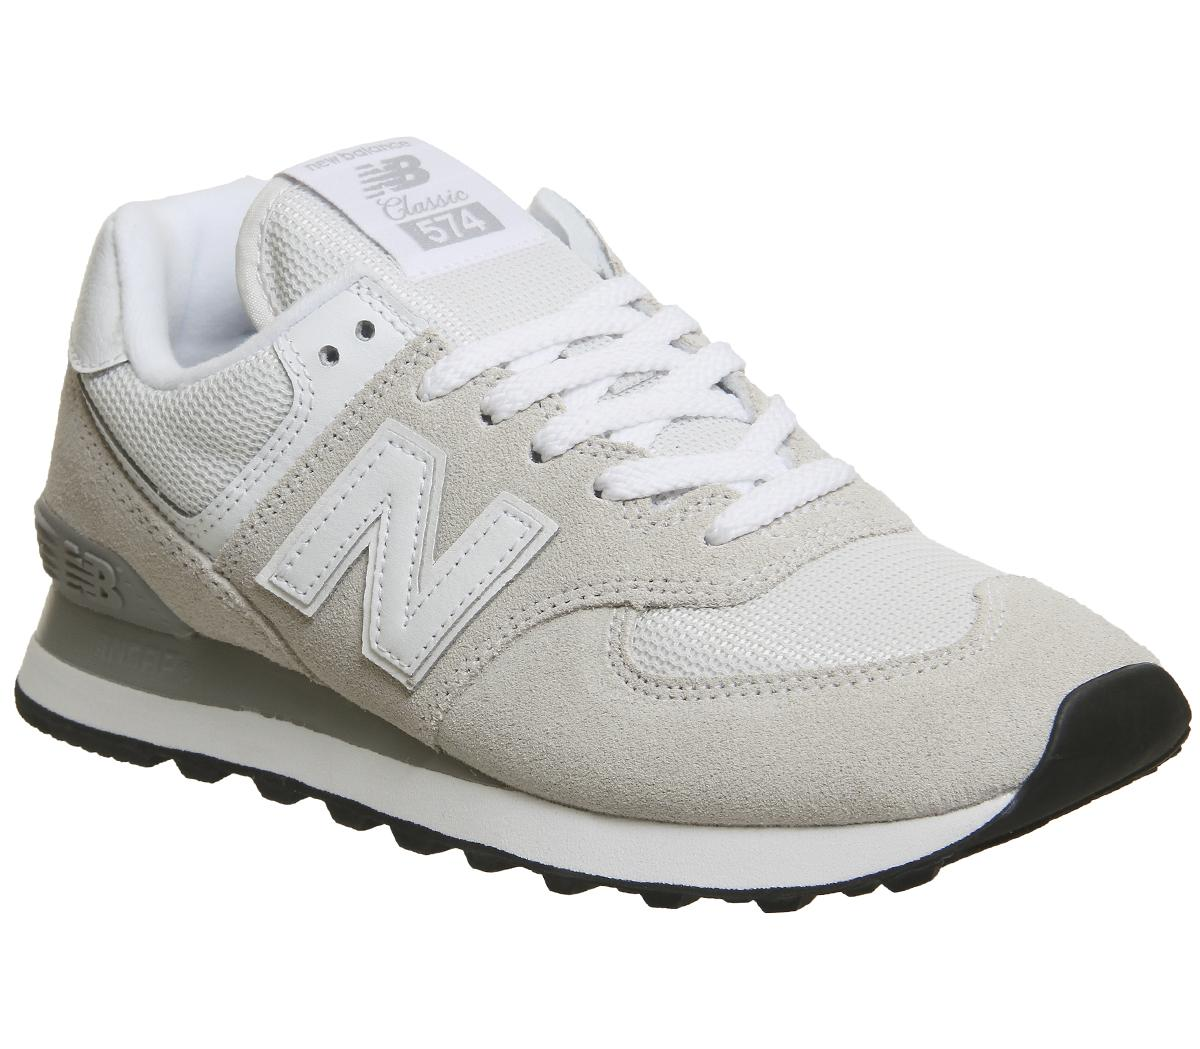 New Balance Wl574 Off White - Hers trainers